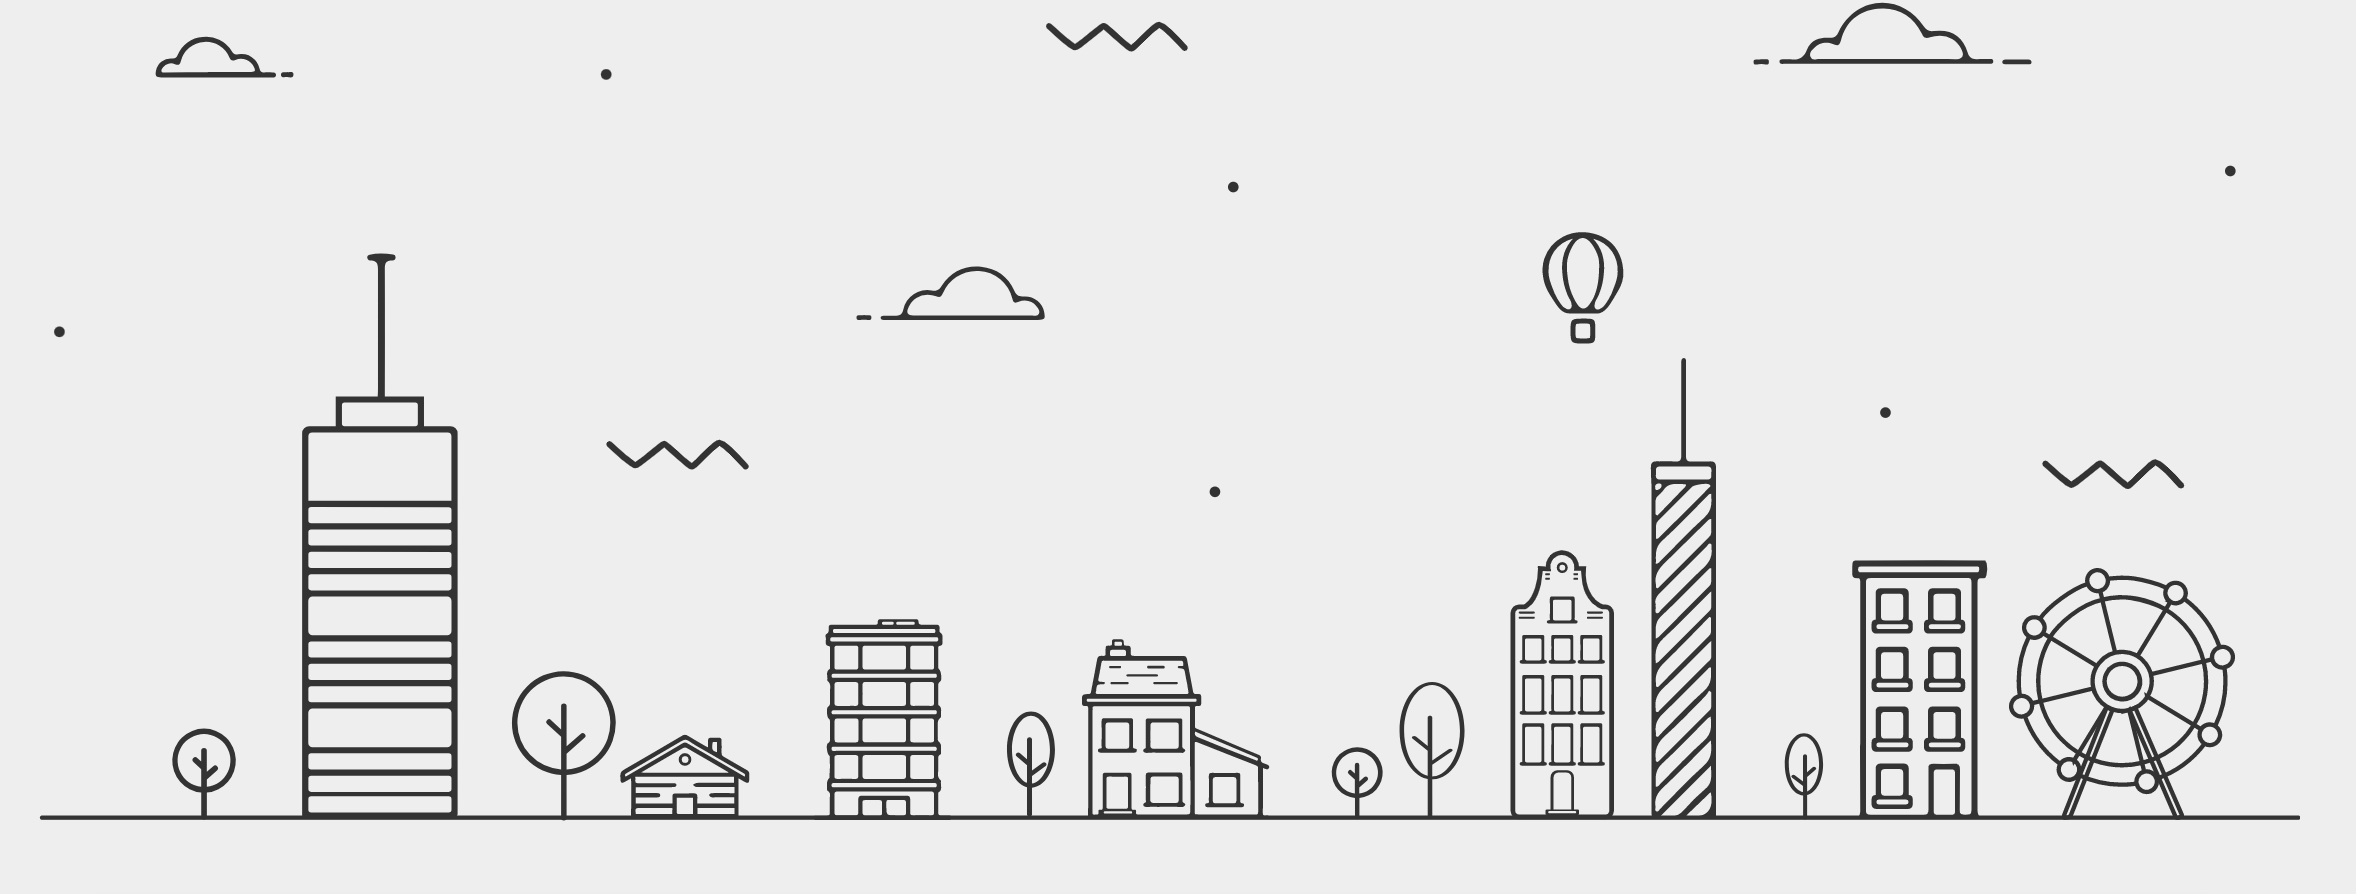 line drawing of different city buildings and some trees against a backdrop of sky with clouds and a hot air balloon